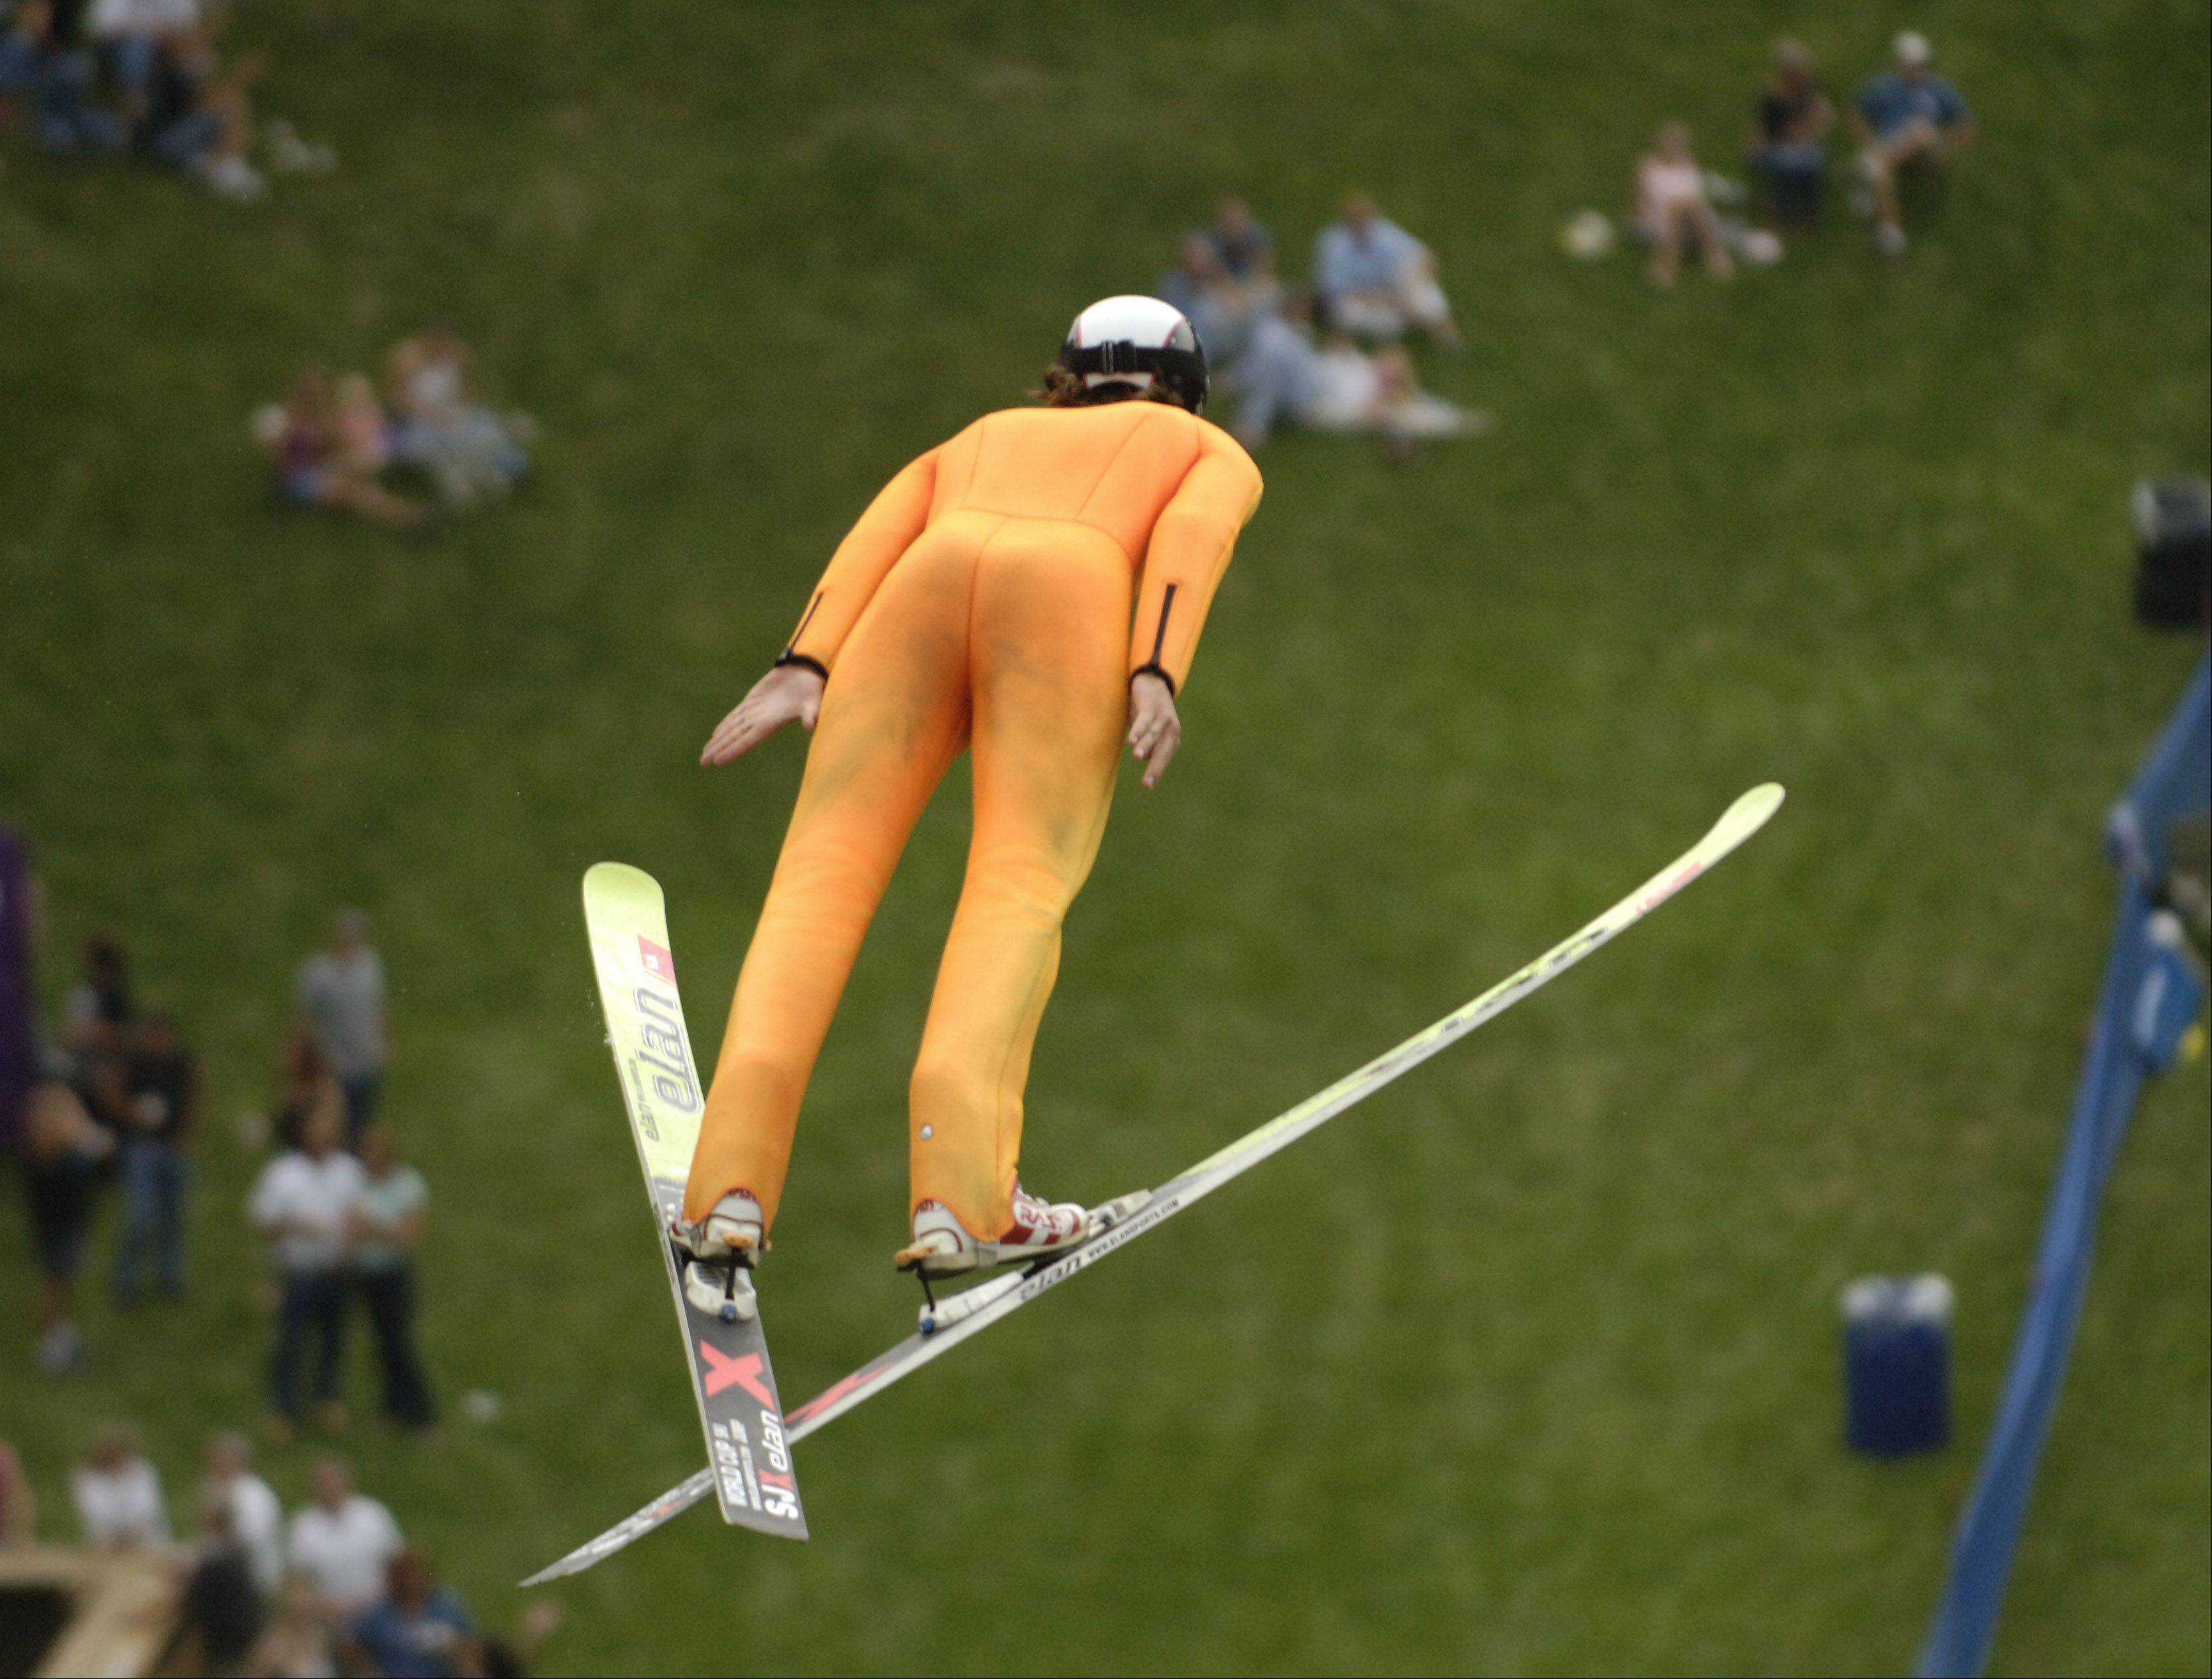 Norge Ski Club in Fox River Grove will be hosting the U.S. Ski Jumping and Nordic Combined Championships on Saturday, while its annual special jumping tournament will take place Sunday. In this 2006 photo, Anders Johnson of the U.S. ski team flies over Norge's 70-meter hill.